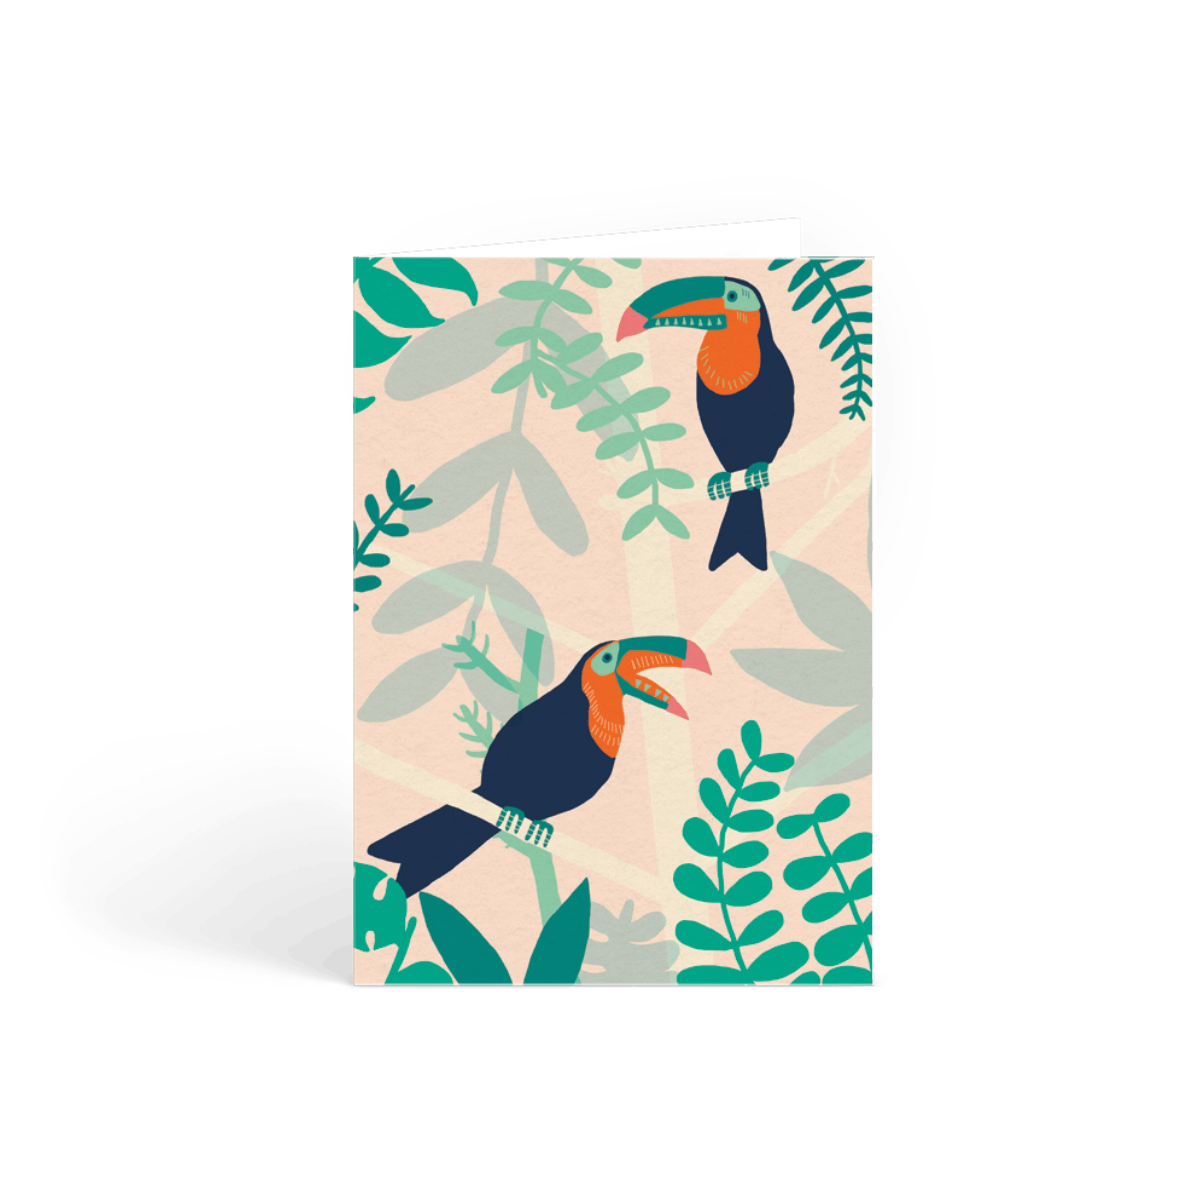 Https%3a%2f%2fwww.papier.com%2fproduct image%2f395%2f2%2ftoucans 108 front 1453909243.png?ixlib=rb 1.1